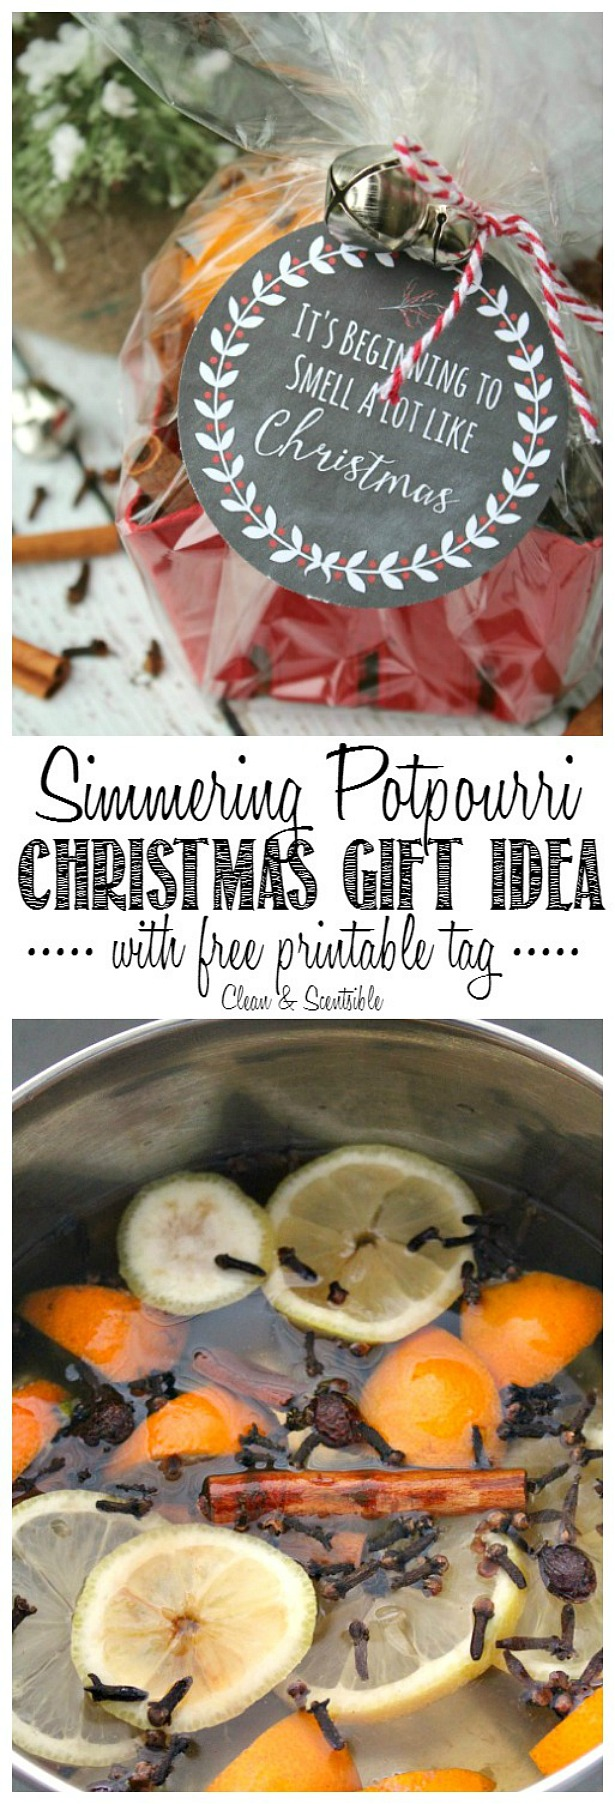 Make your home smell like Christmas with this easy simmering potpourri recipe. Works great as a simple gift idea as well with a free printable gift tag.